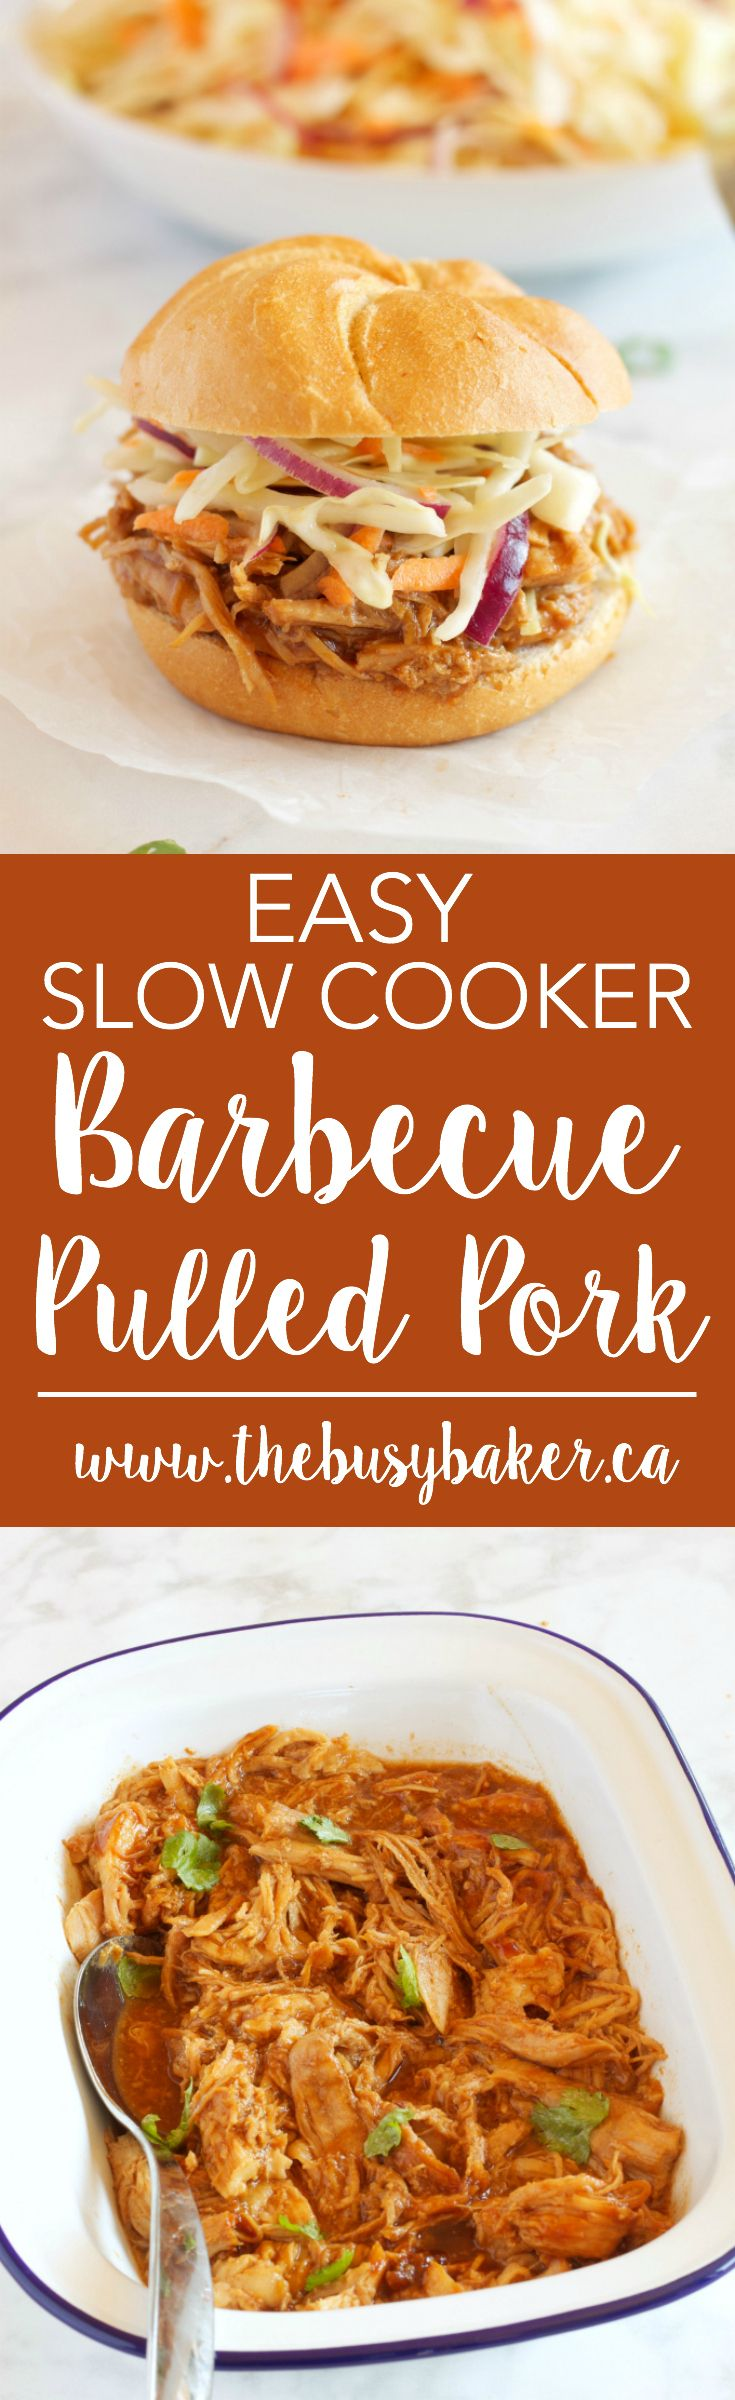 These Easy Slow Cooker Barbecue Pulled Pork Sandwiches feature a super easy 3-ingredient Slow Cooker Pulled Pork with an easy, healthy homemade coleslaw! Recipe from thebusybaker.ca! via @busybakerblog